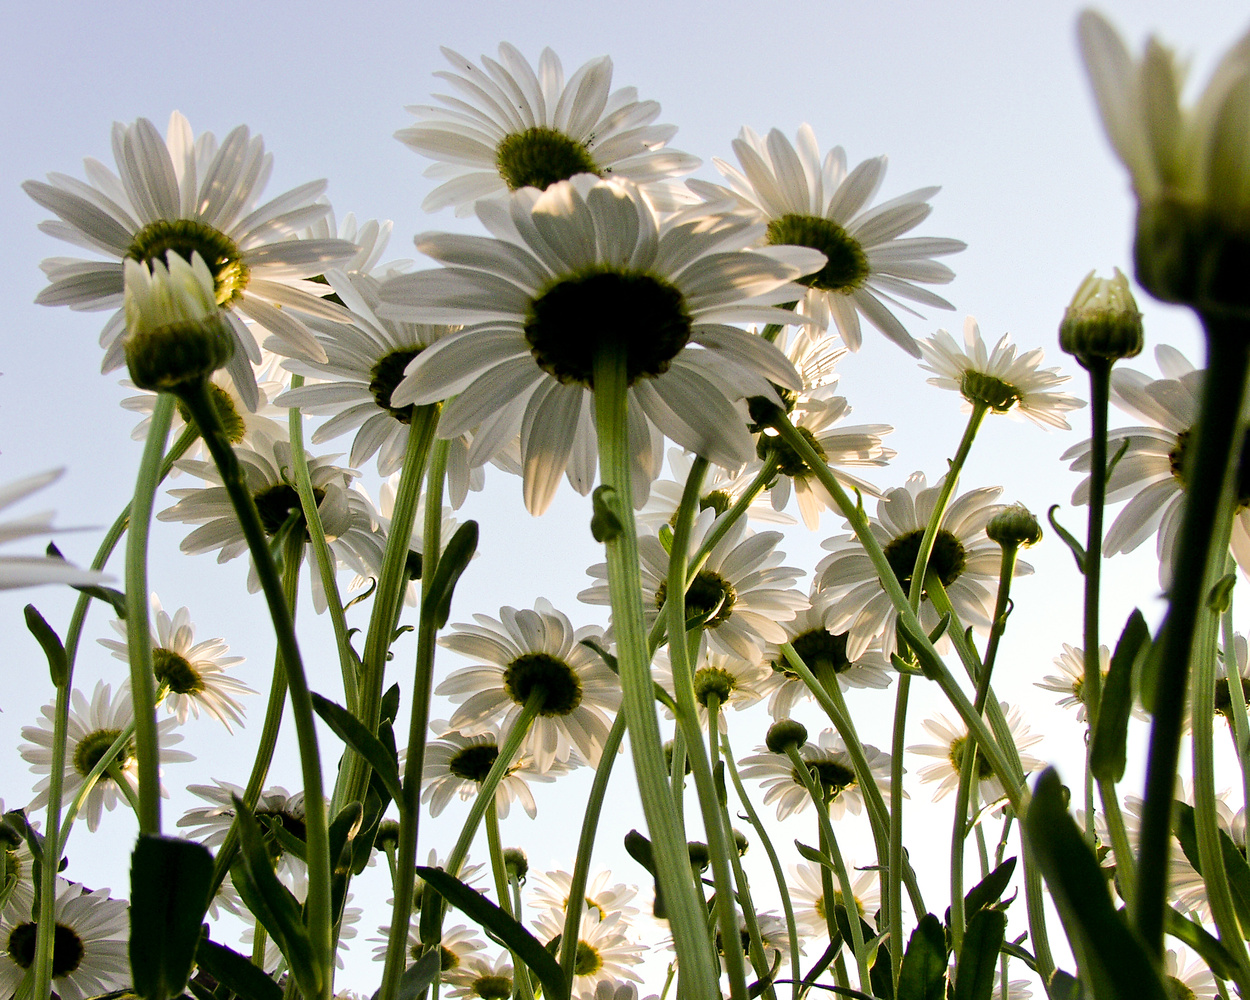 Daisies for Pam by Jeff Burian